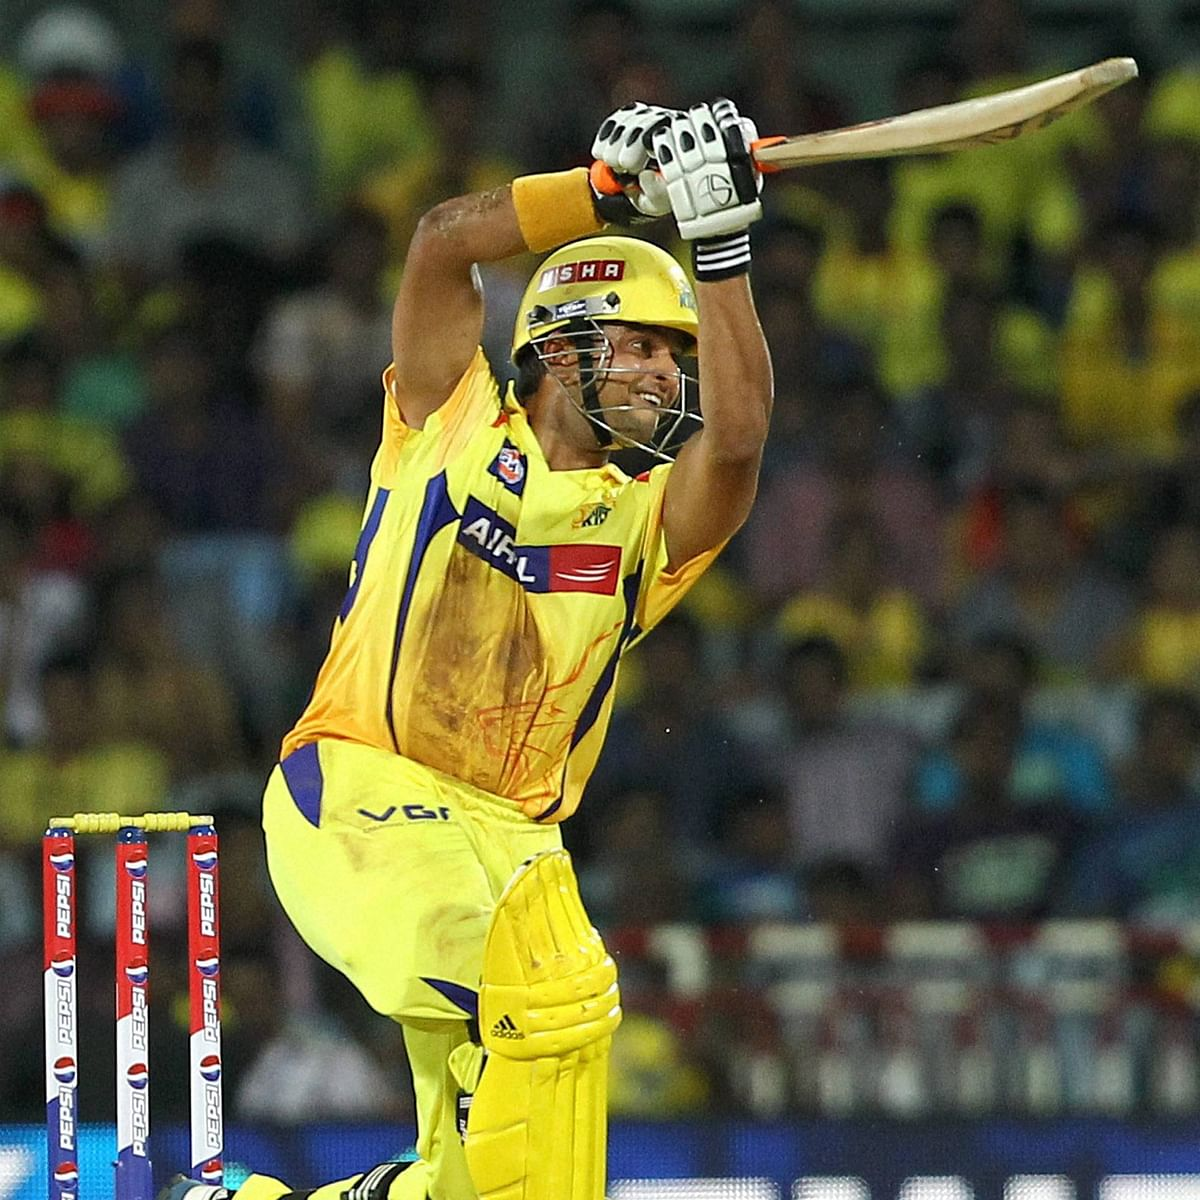 CSK's IPL in danger? From 13 testing positive for COVID-19 to Suresh Raina returning to India - here's the story so far